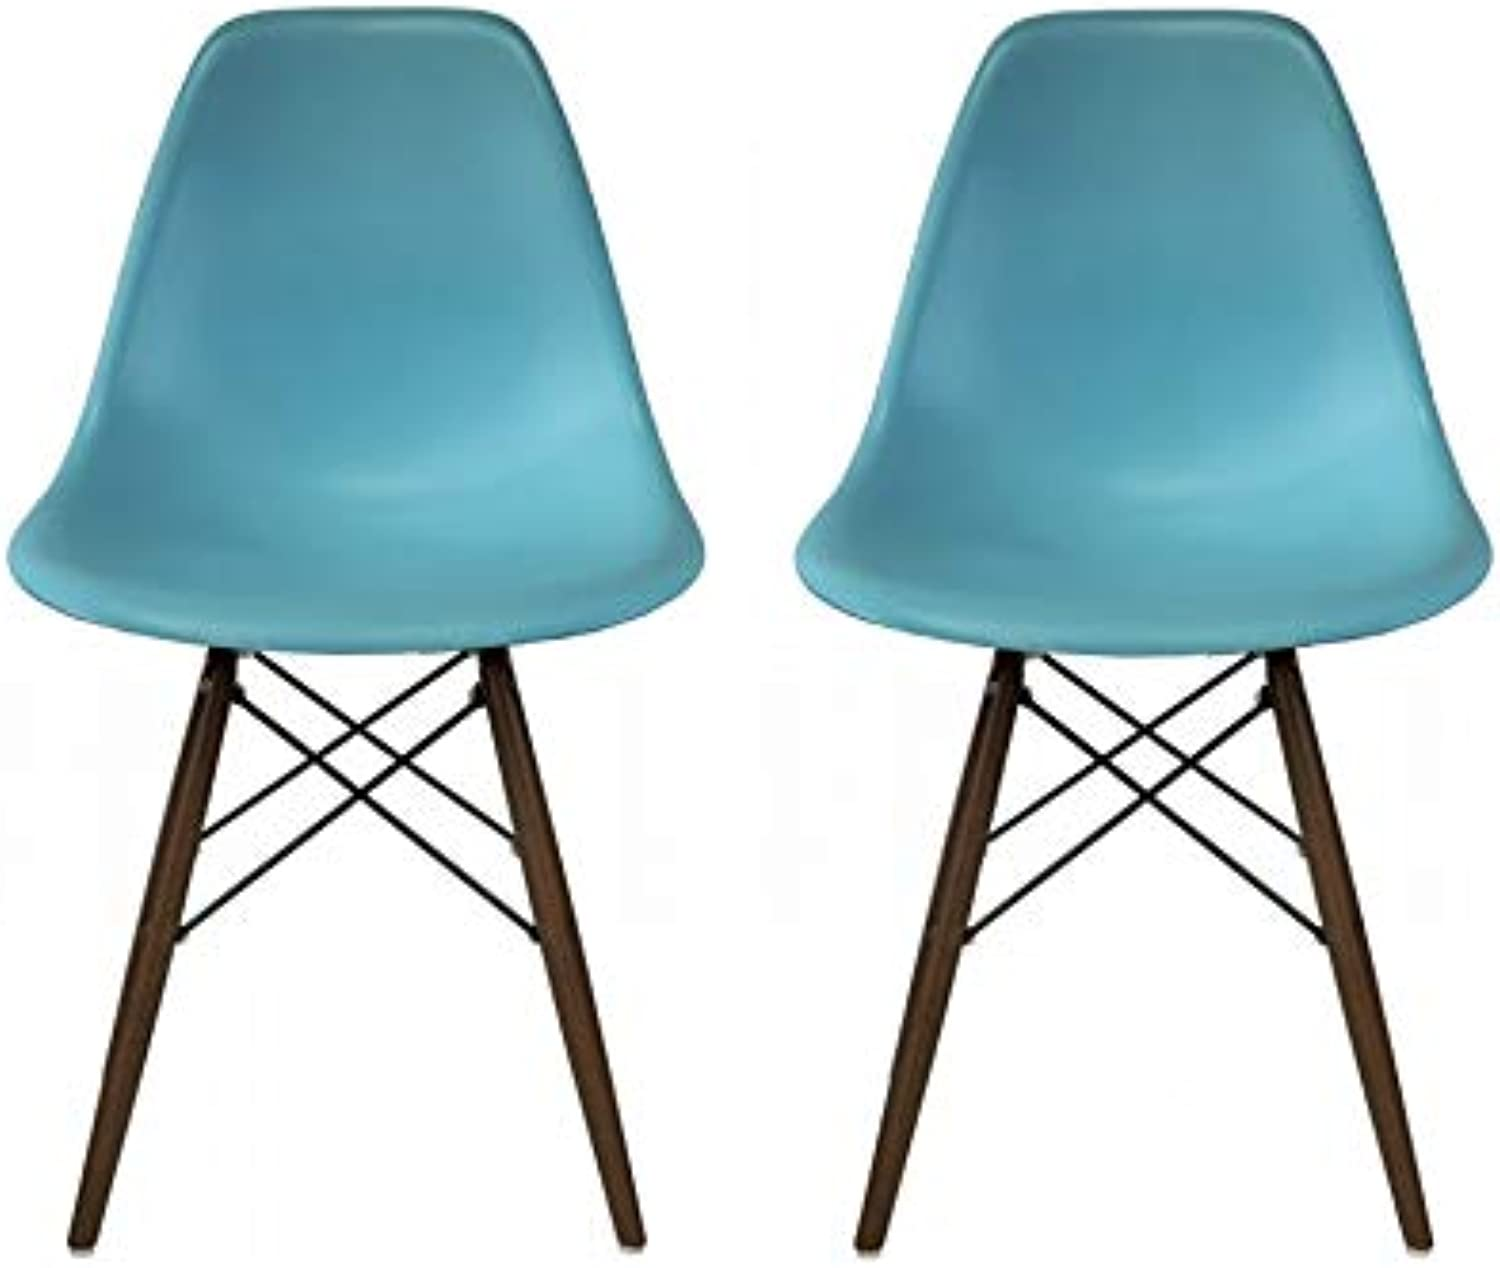 Take Me Home Furniture Eames Style Side Chair with Walnut Wood Legs Eiffel Dining Room Chair - Set of 2 (bluee)